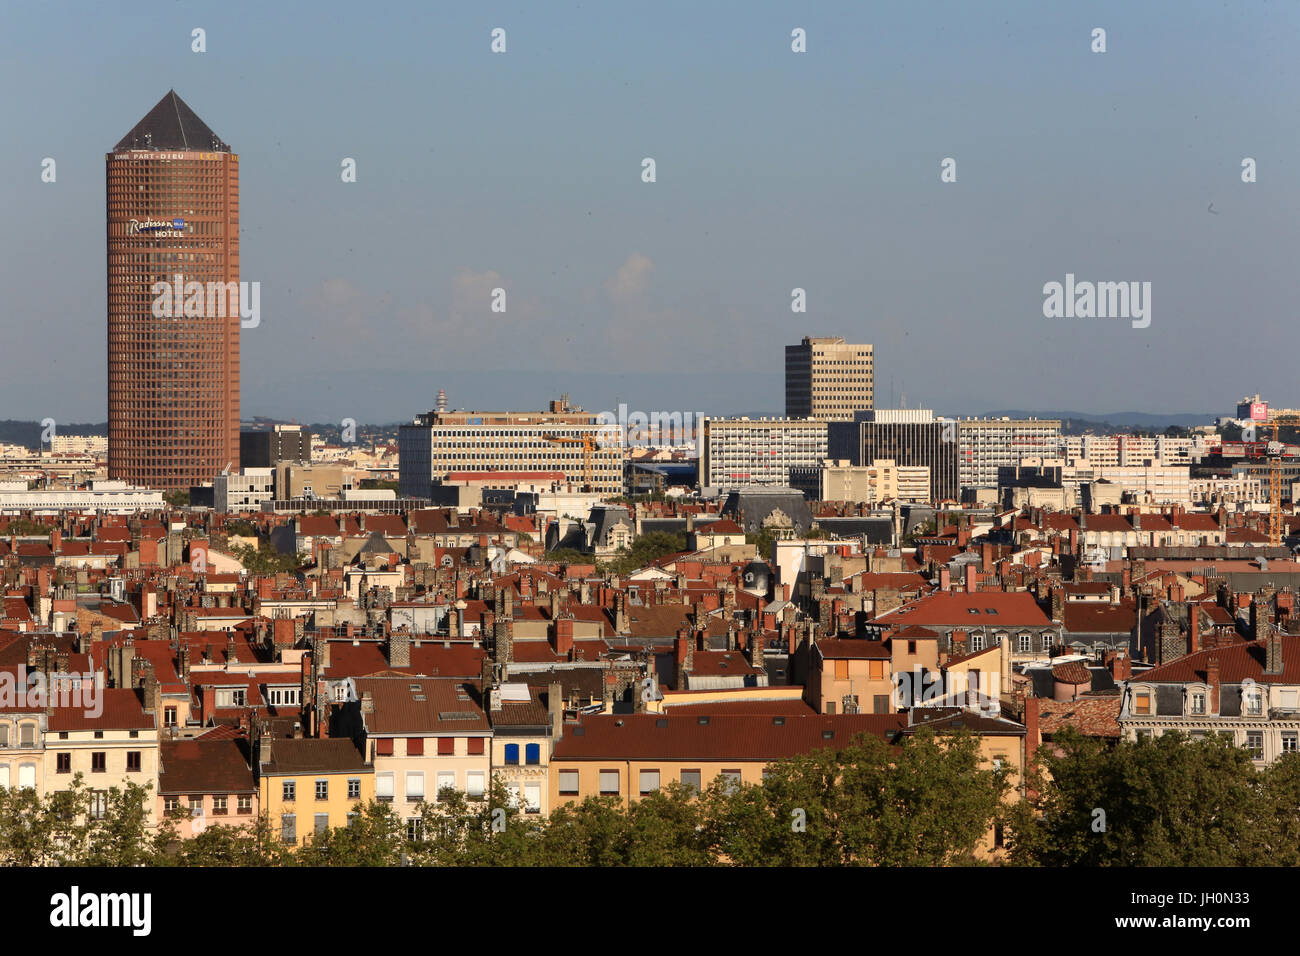 Hotel Radisson. Panoramic view from Viewpoint of Notre Dame de Fourviere hill.   France. - Stock Image